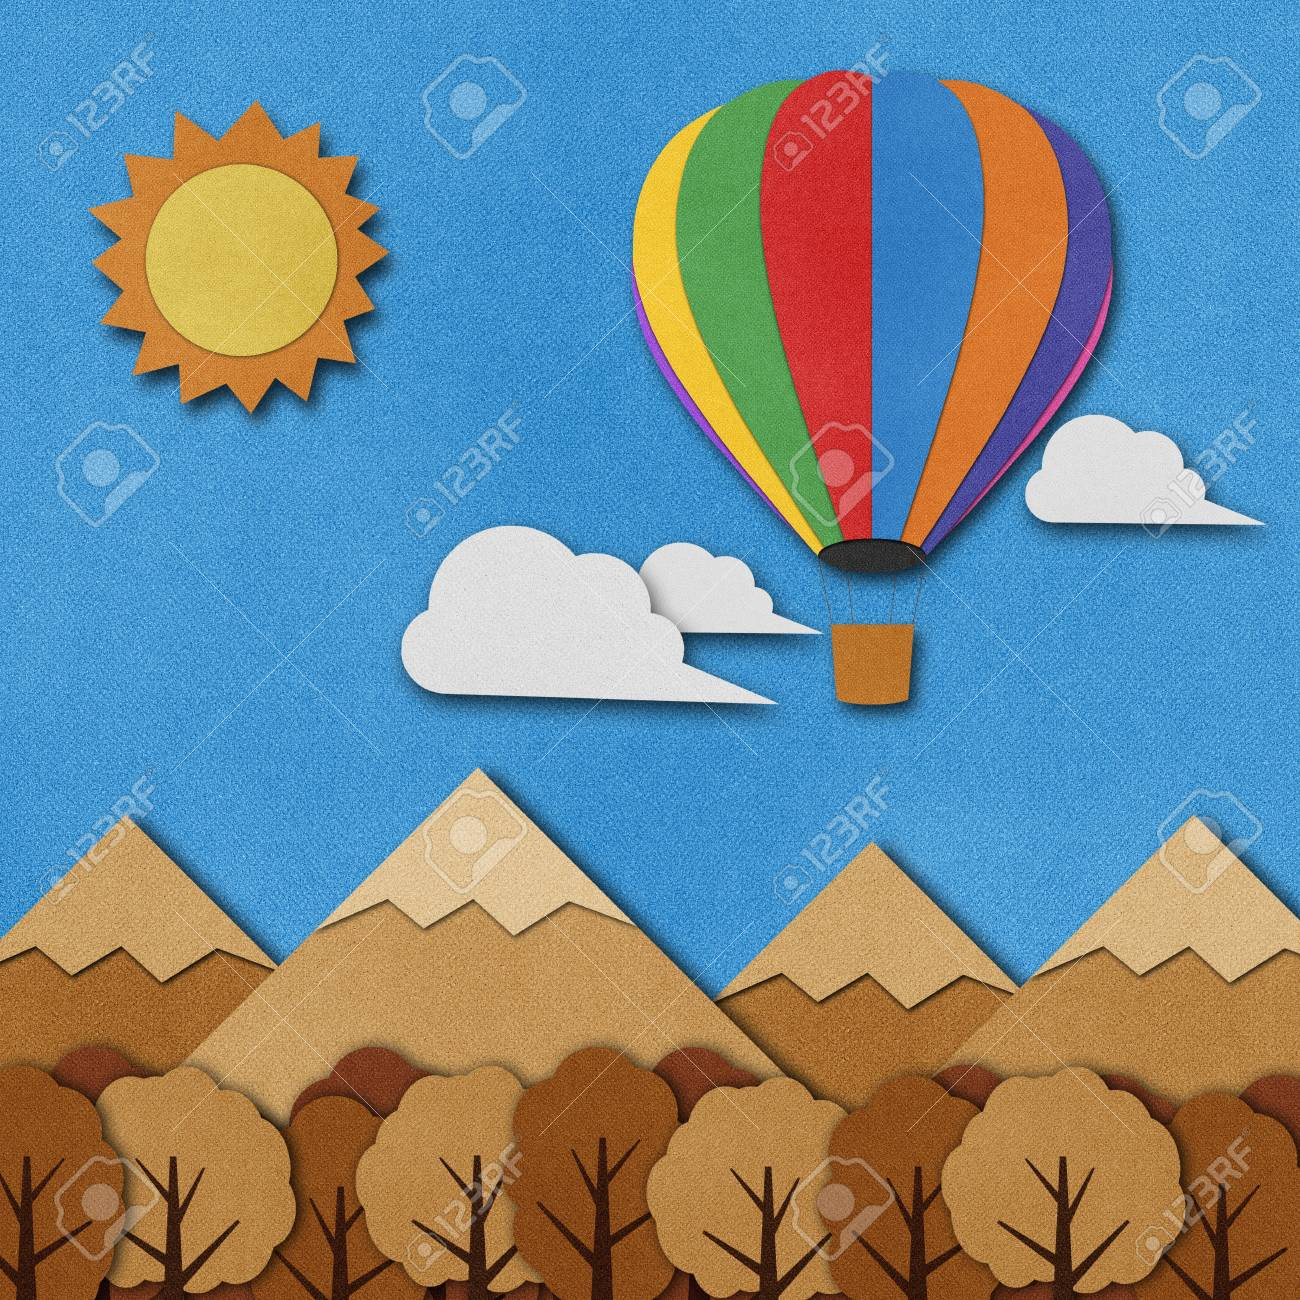 Balloon made from recycled paper background. Stock Photo - 15862273